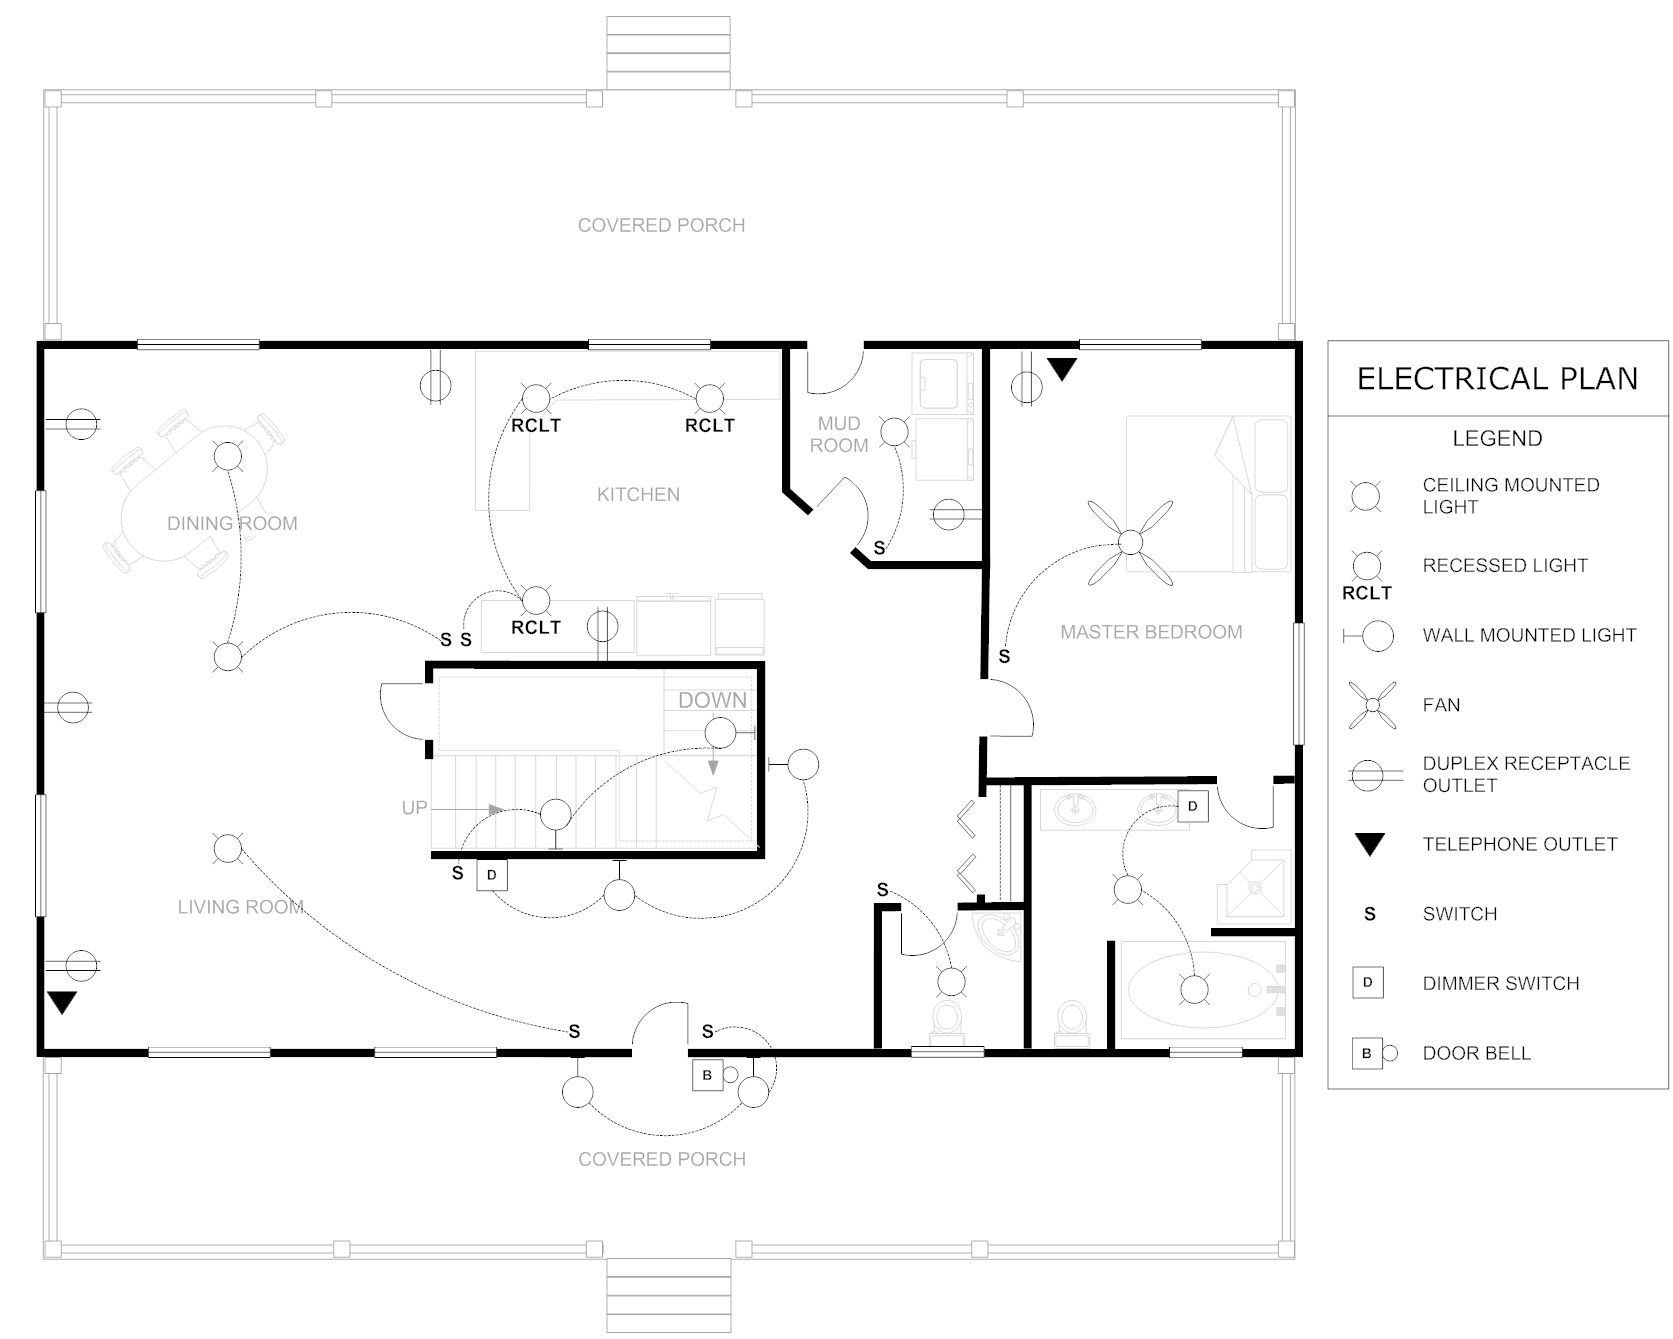 4 bedroom house floor plans house floor plan examples lighting and electrical plan lighting and electrical plan lighting and electrical plan lighting and electrical plan